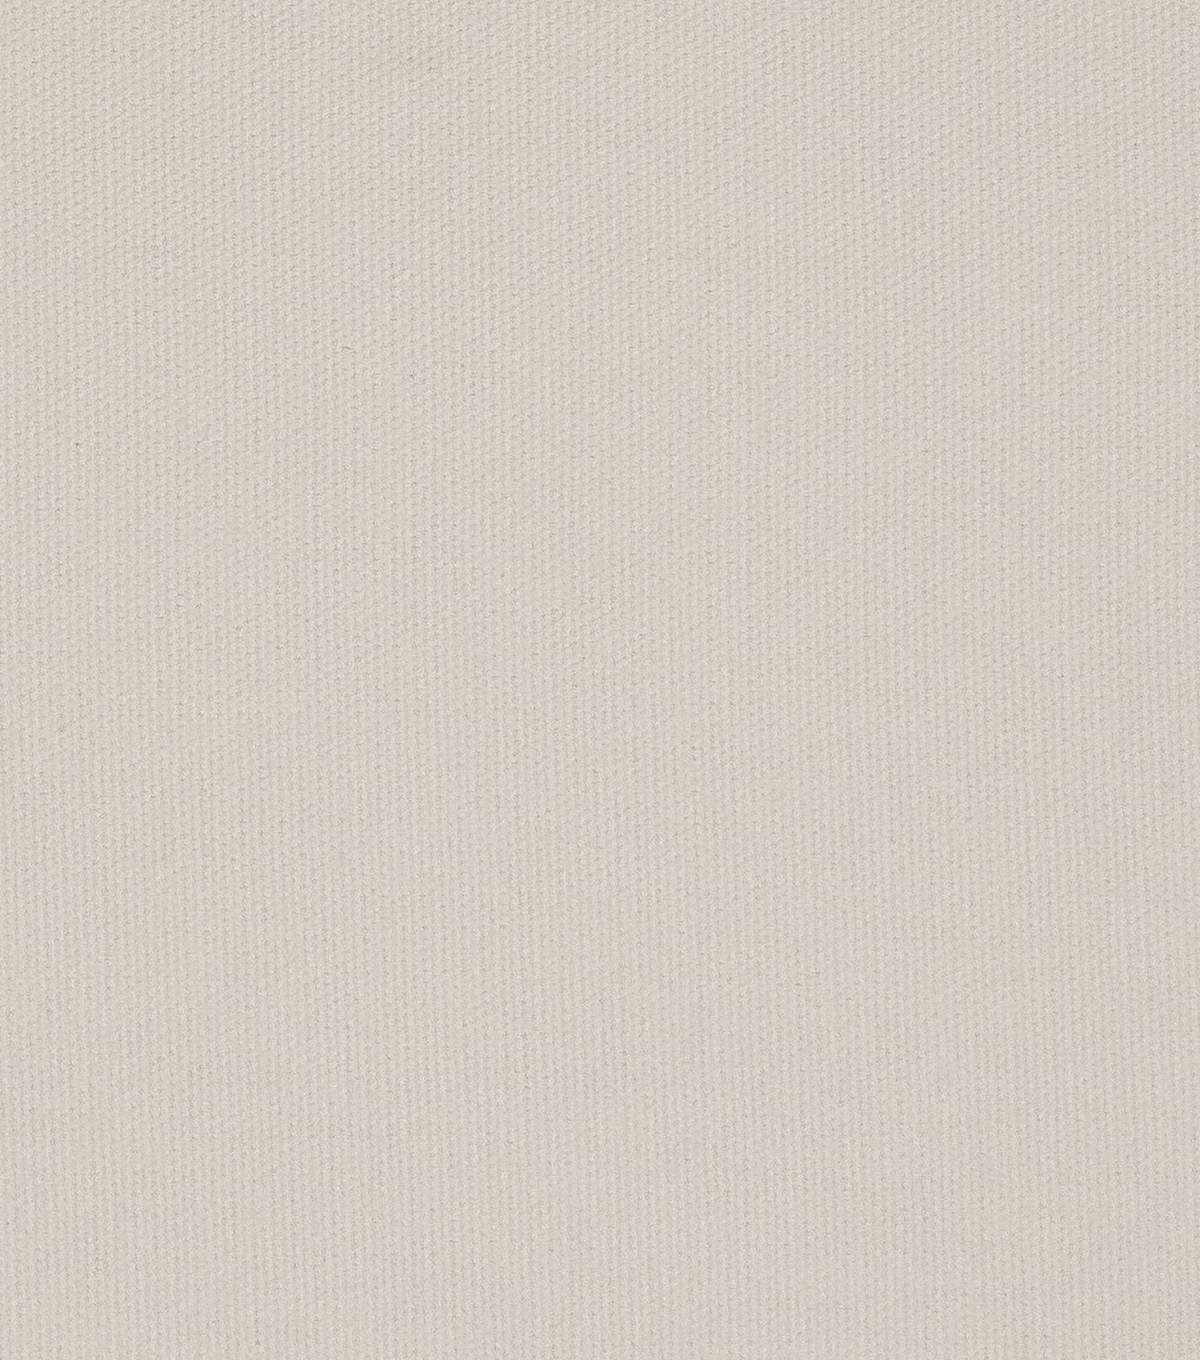 Home Decor 8\u0022x8\u0022 Fabric Swatch-Elite Orion Optical White